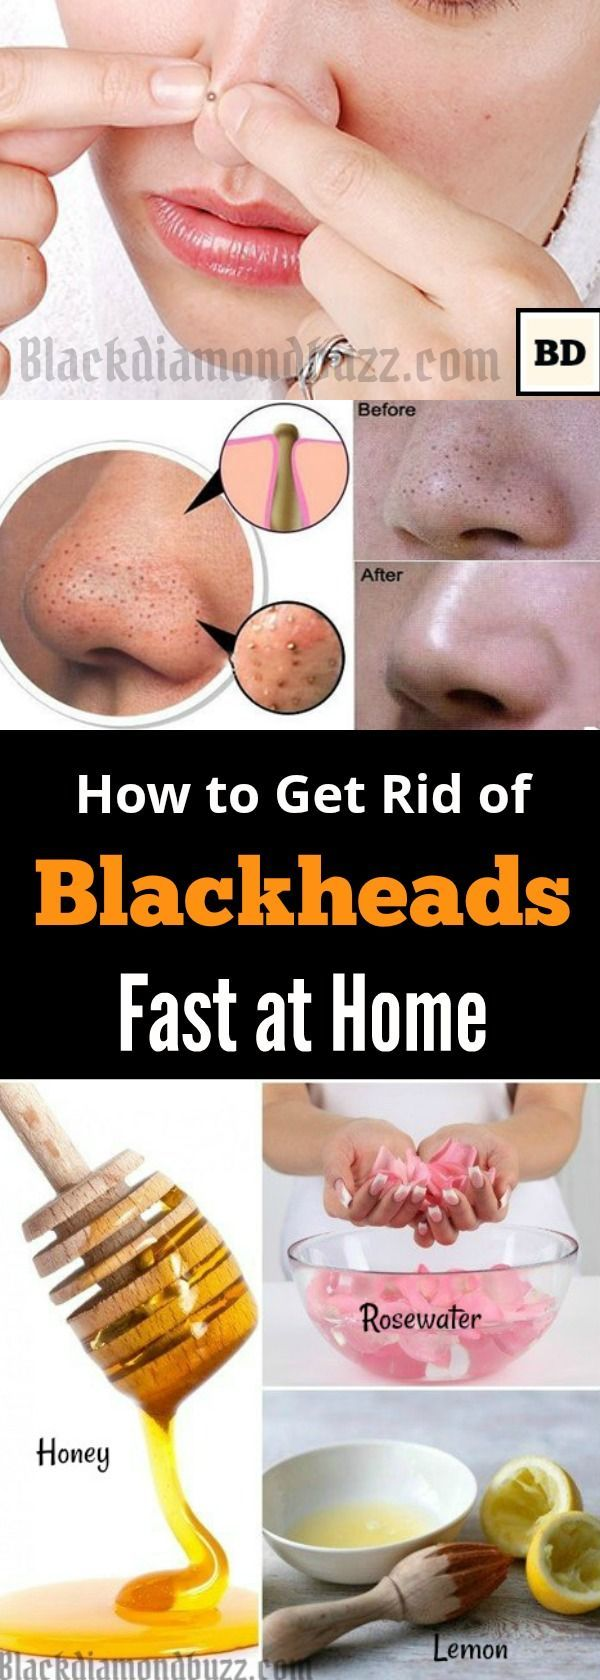 Remove blackheads with flour and honey maskJUST ADD  TSP OF